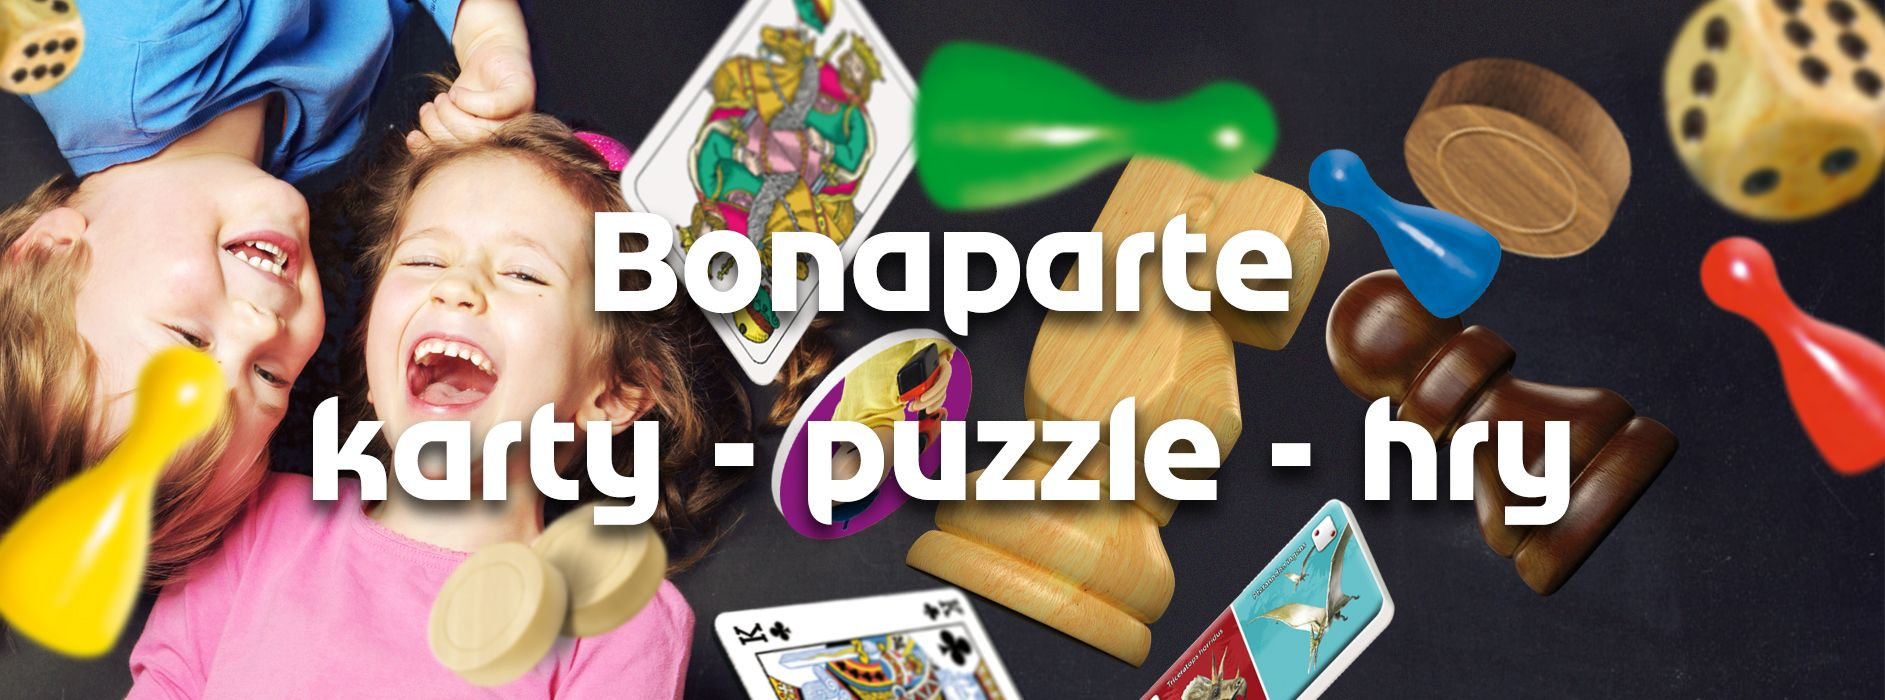 banner Bonaparte karty puzzle hry